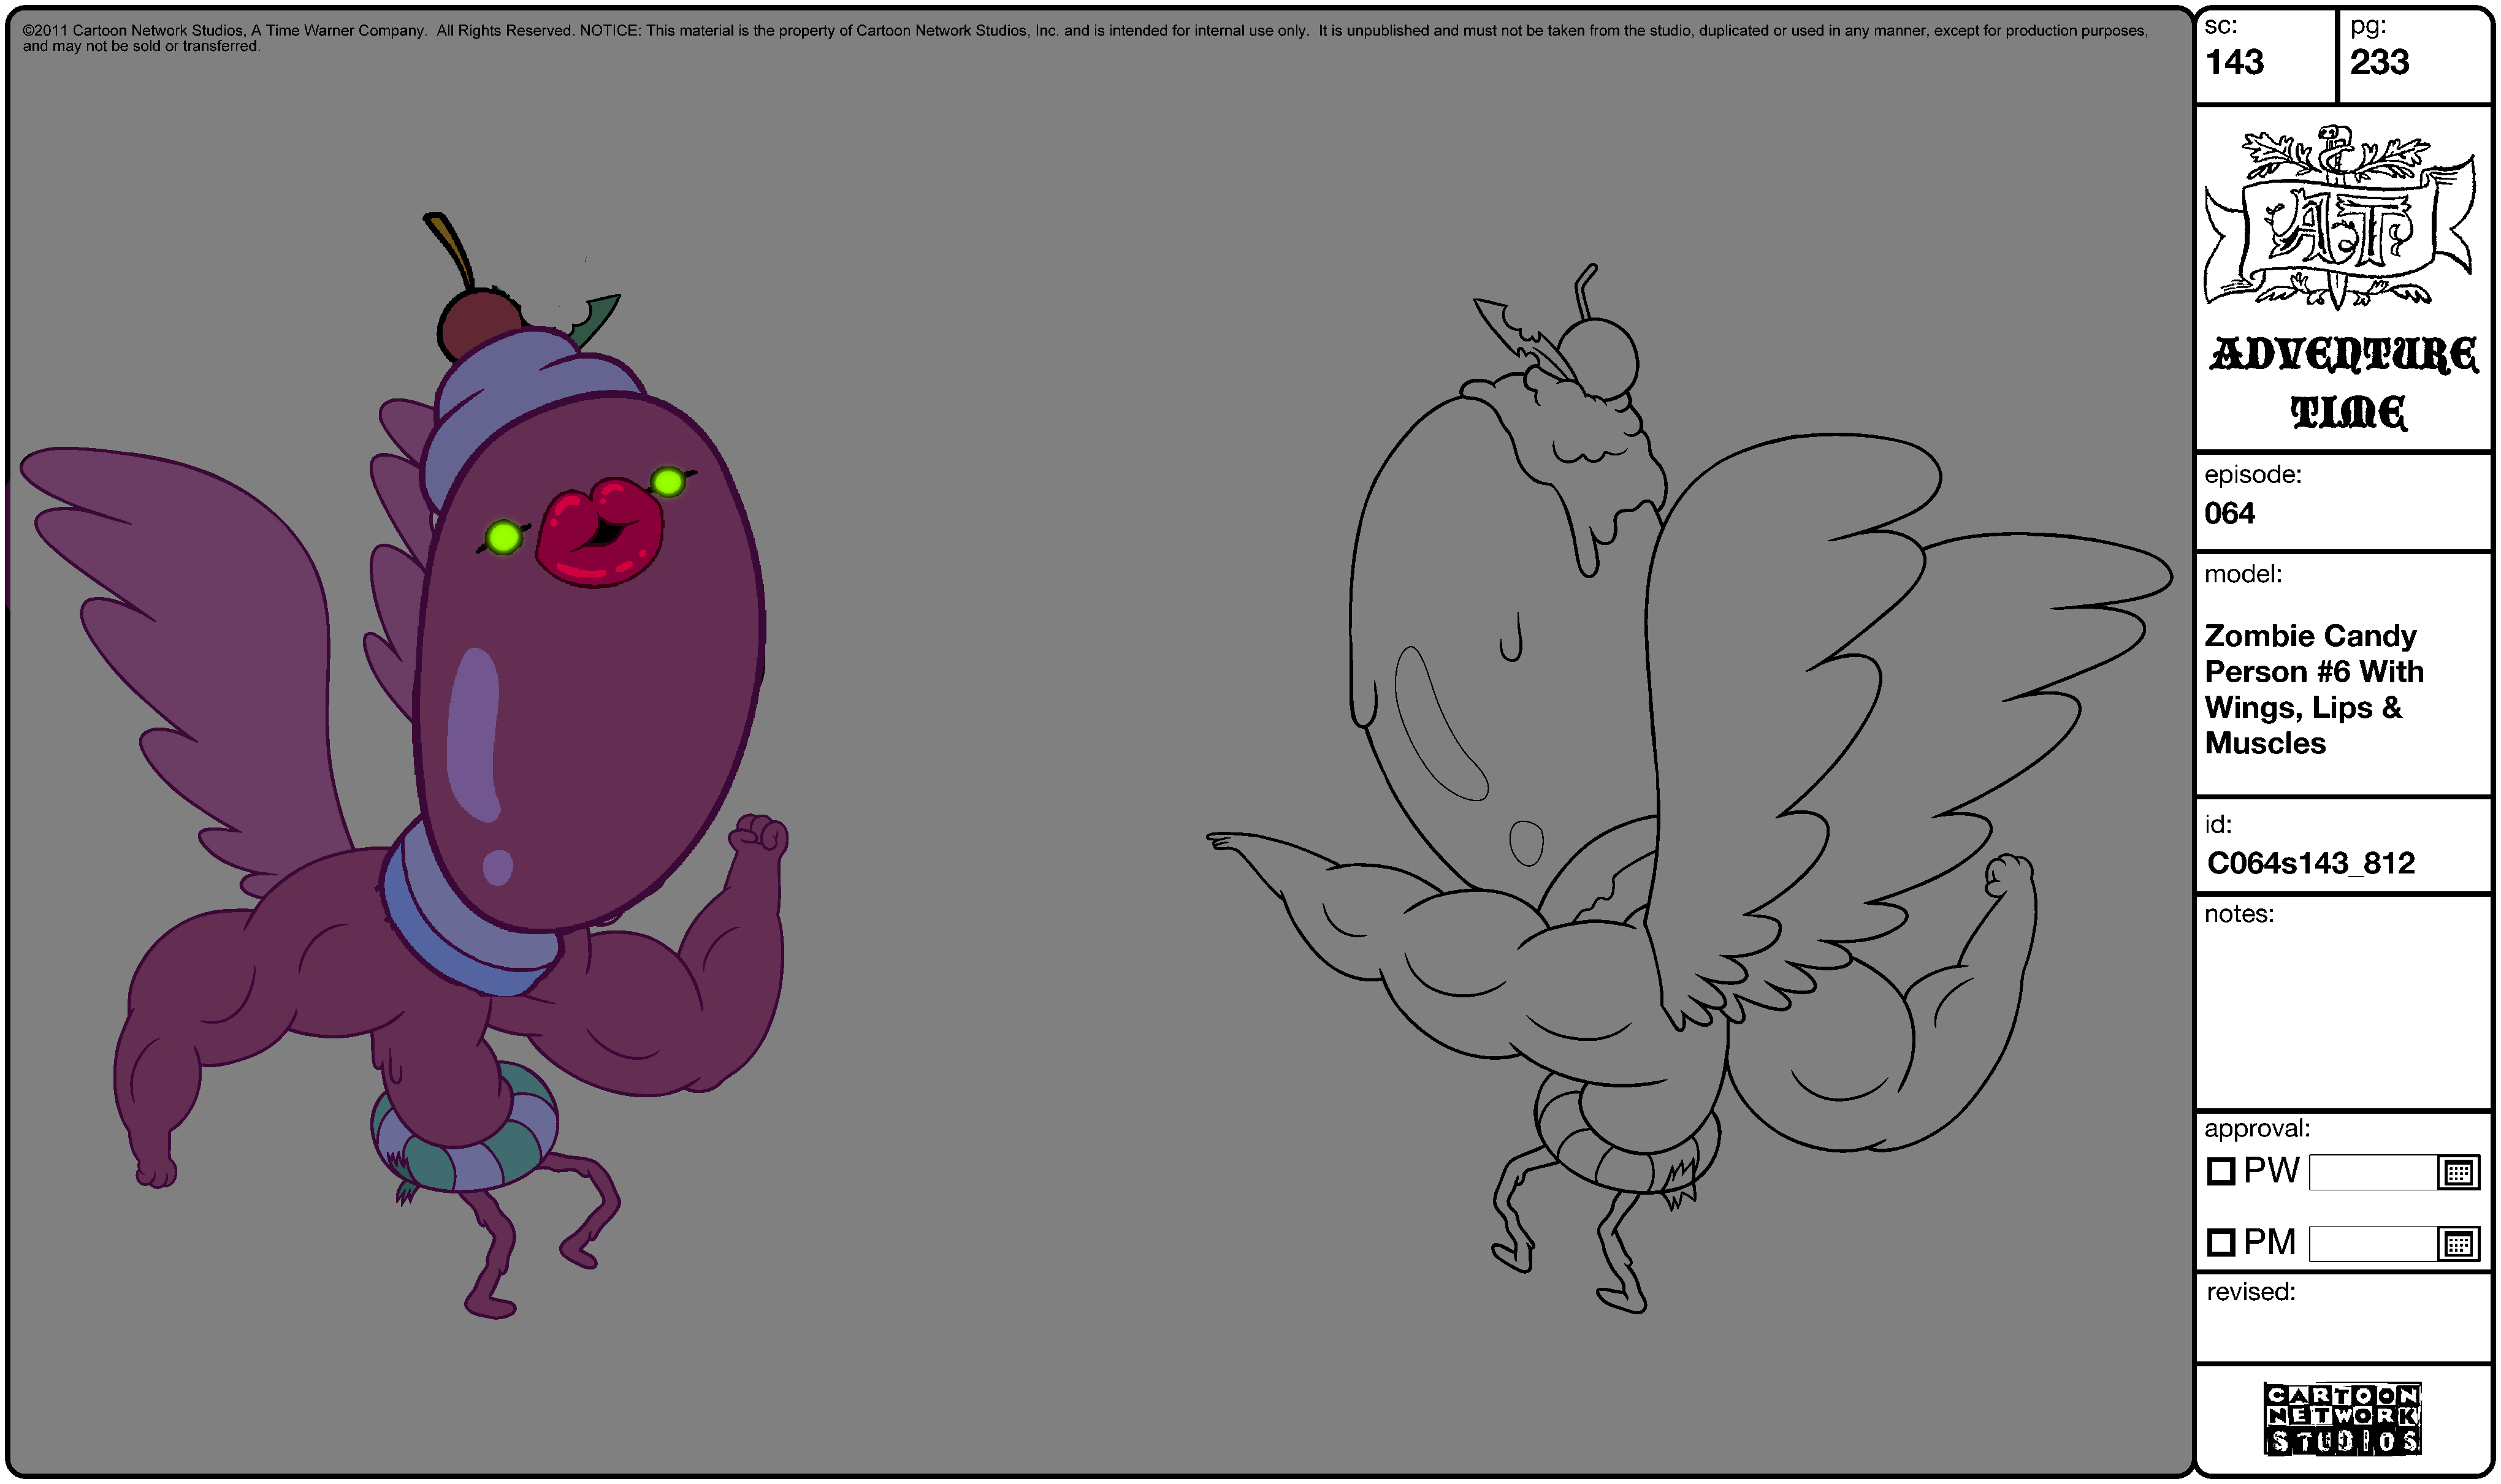 Modelsheet Zombie Candy Person -6 with Wings, Lips & Muscles